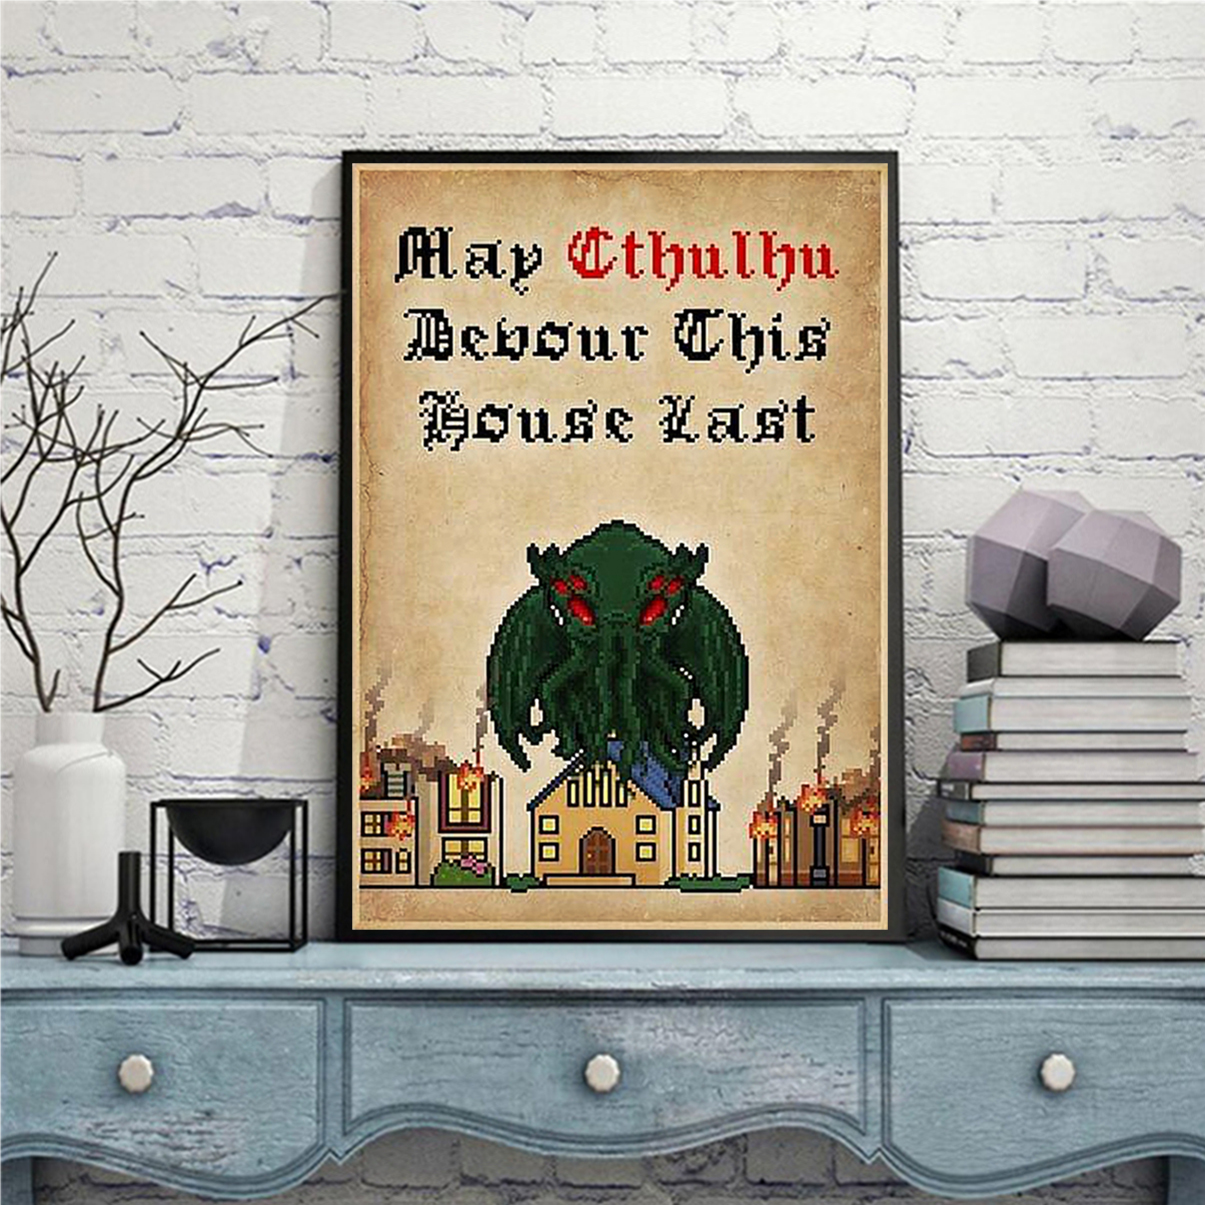 May cthulhu devour this house last poster A3